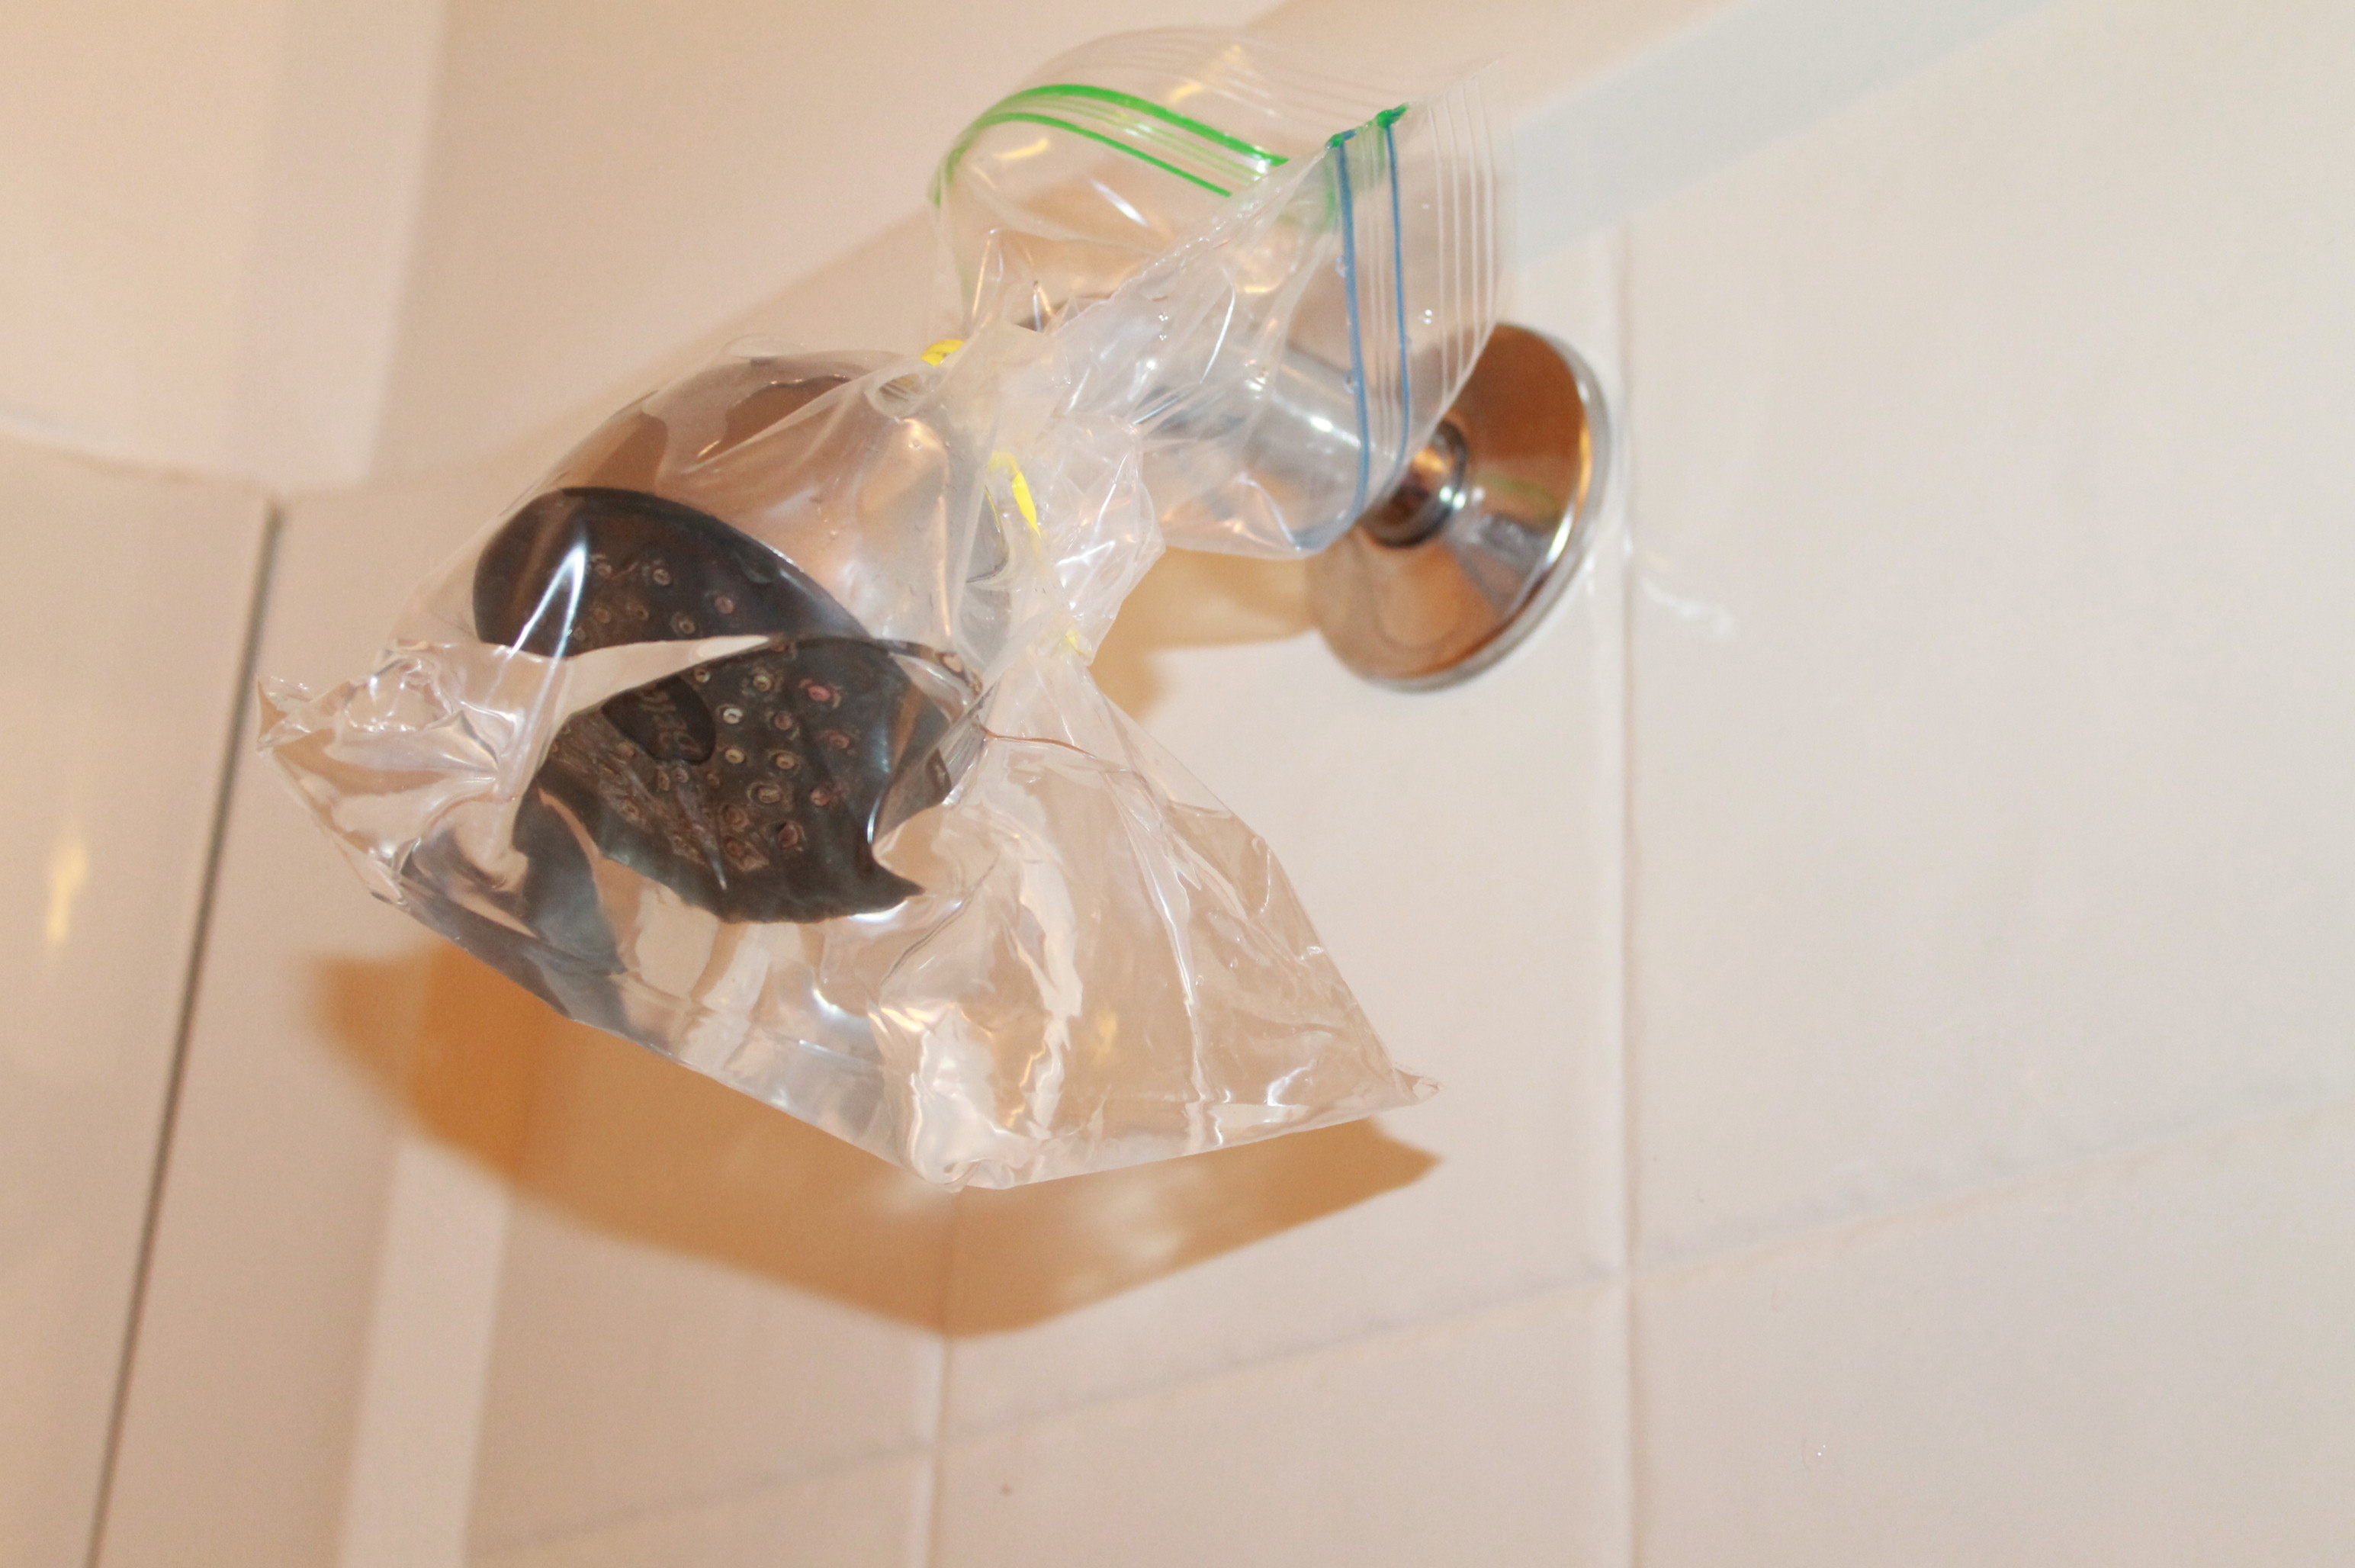 I Actually Put In Too Much Vinegar Initially And Because I Really Sealed  Off The Bag Well, The Shower Head Actually Sucked The Vinegar Up Into The  Spout!